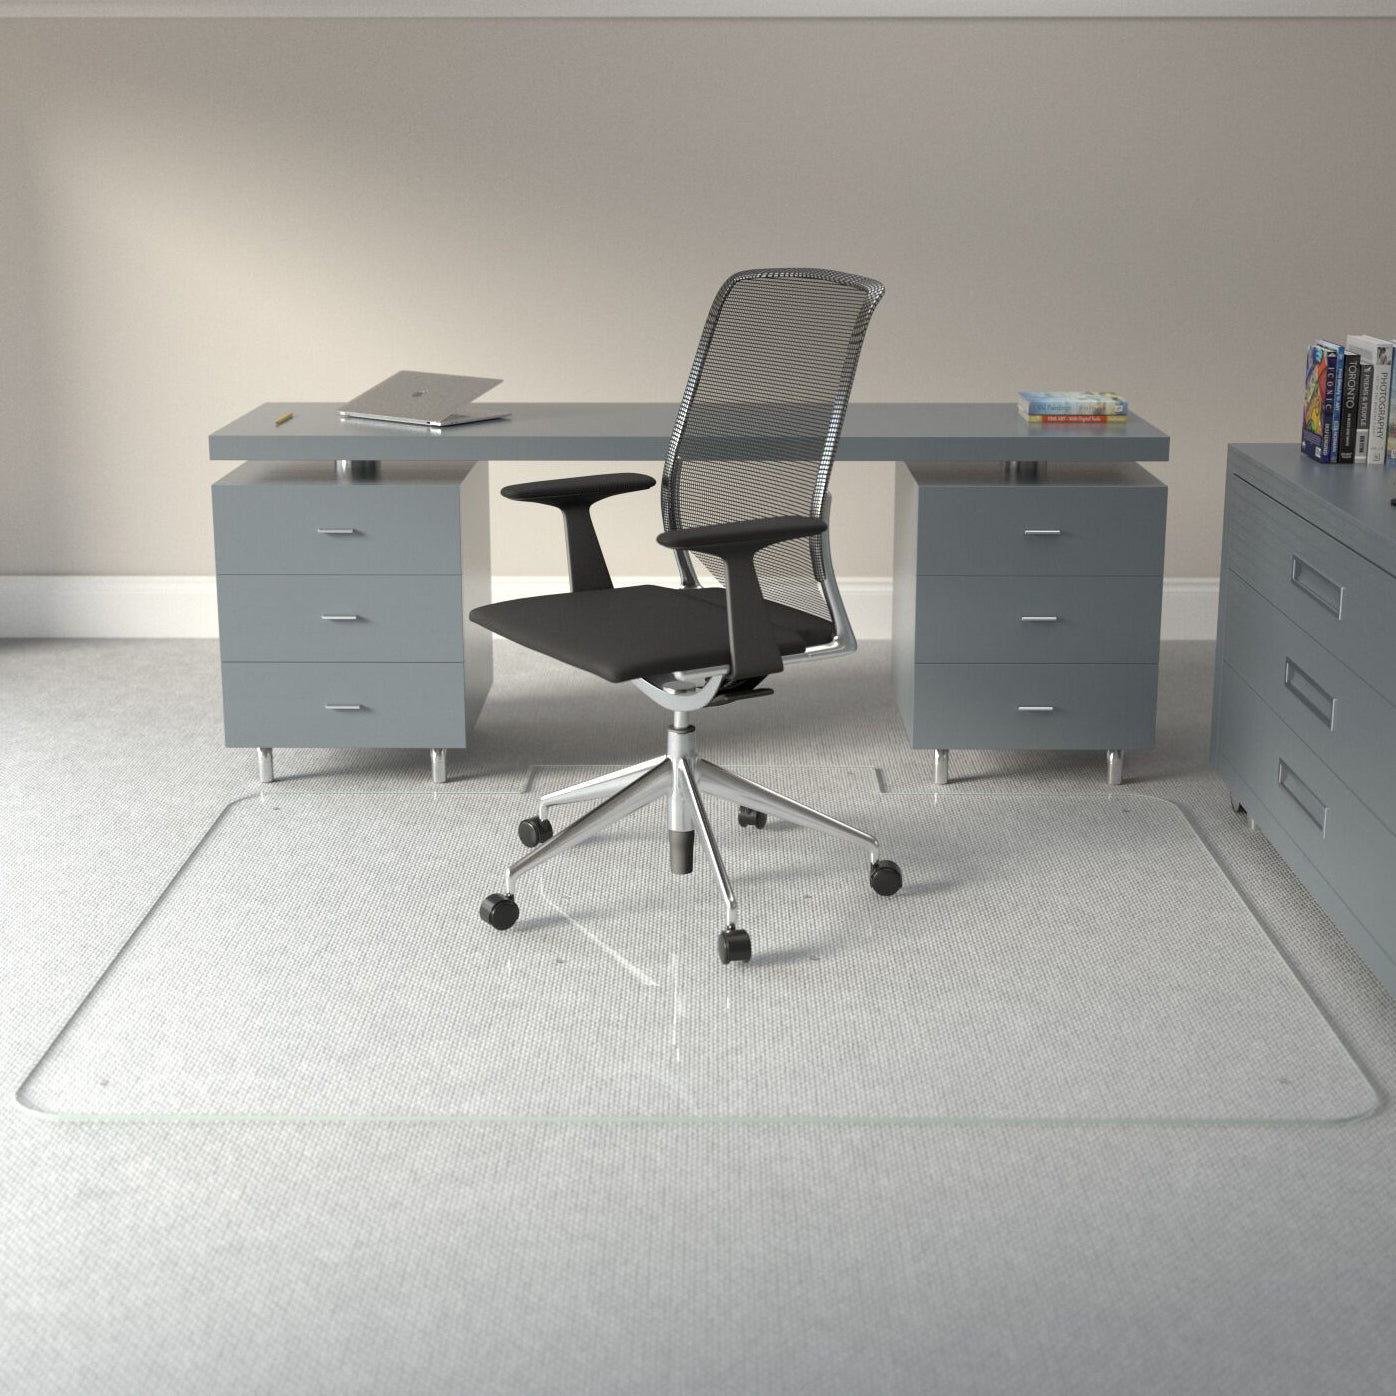 As Heard On Sirius Xm Order 5 Or More Glass Chair Mats Save 25 Vitrazza